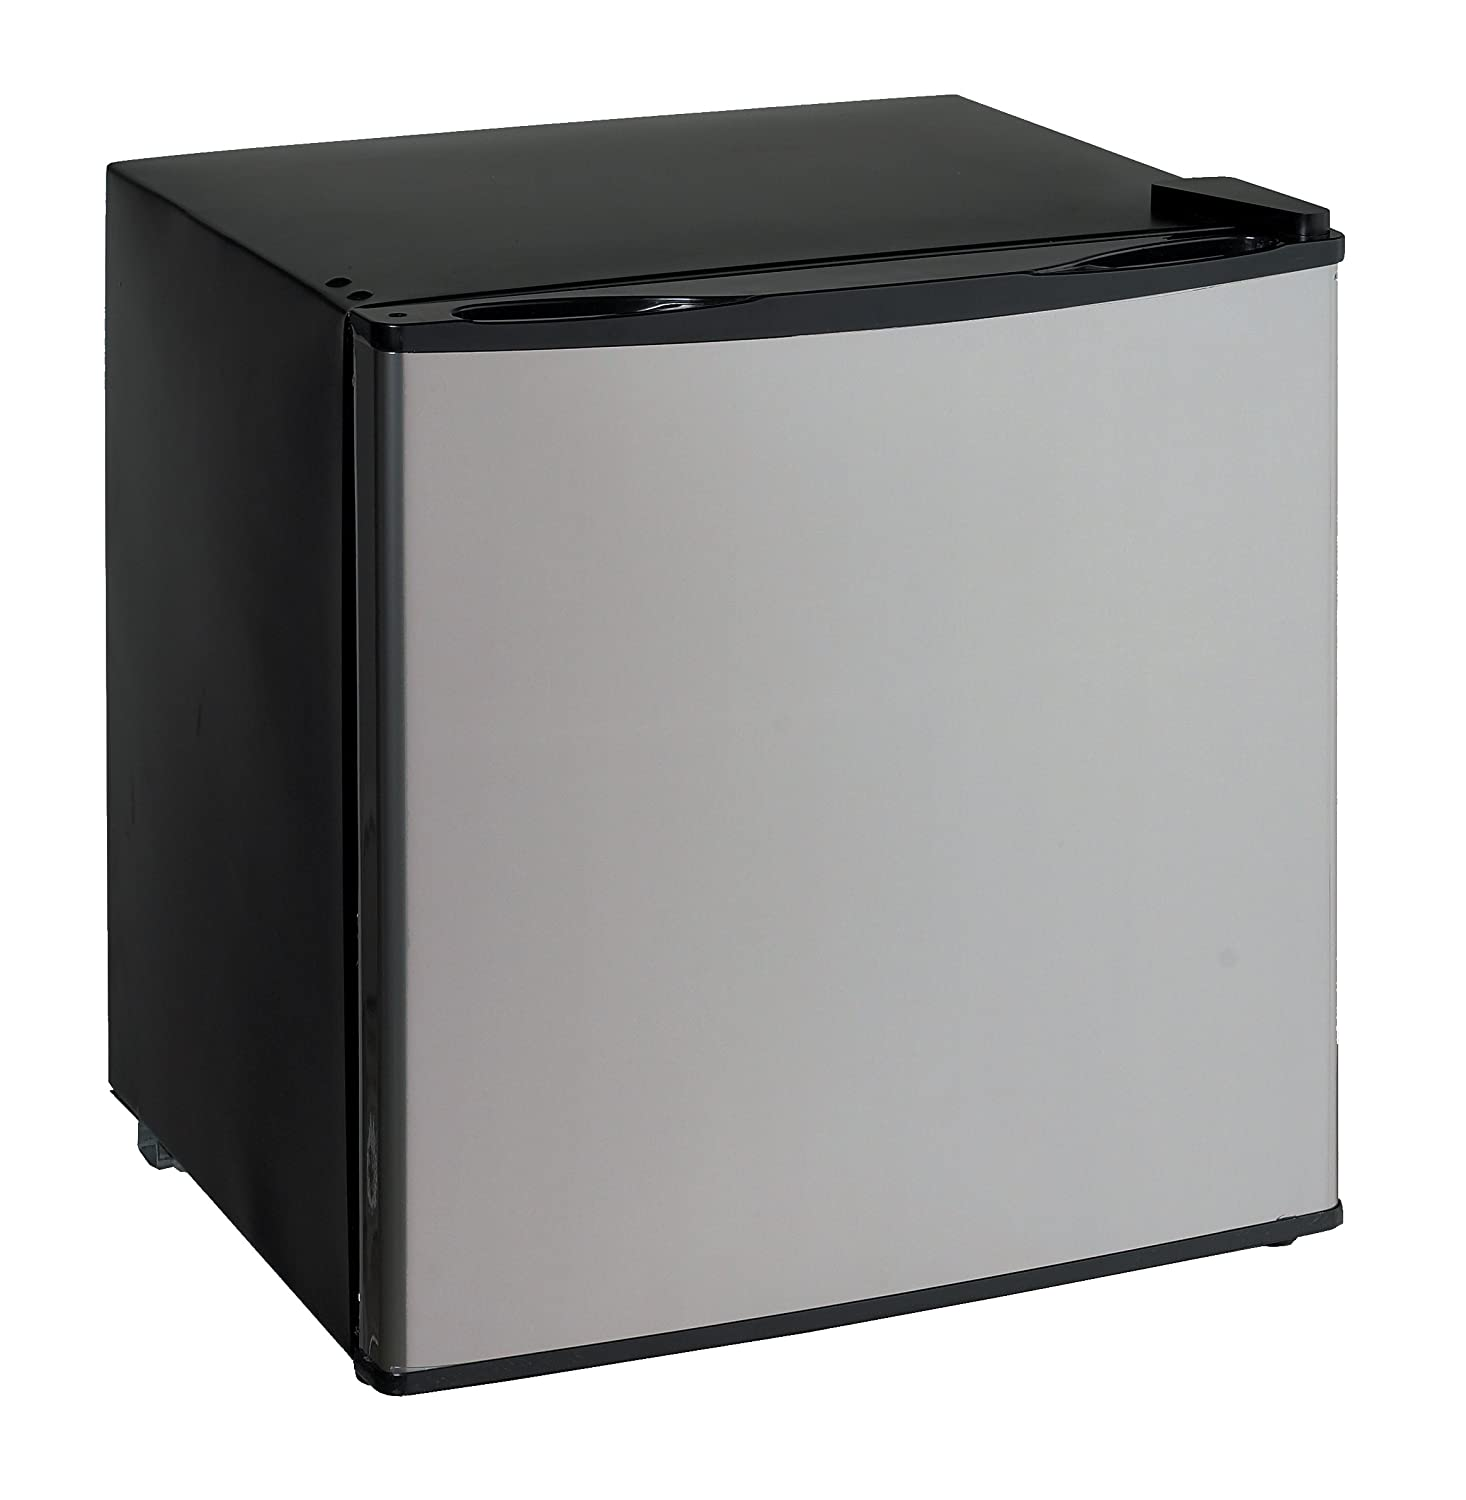 Avanti VFR14PS IS Dual Switchable Refrigerator Freezer 1.4 Cubic Feet